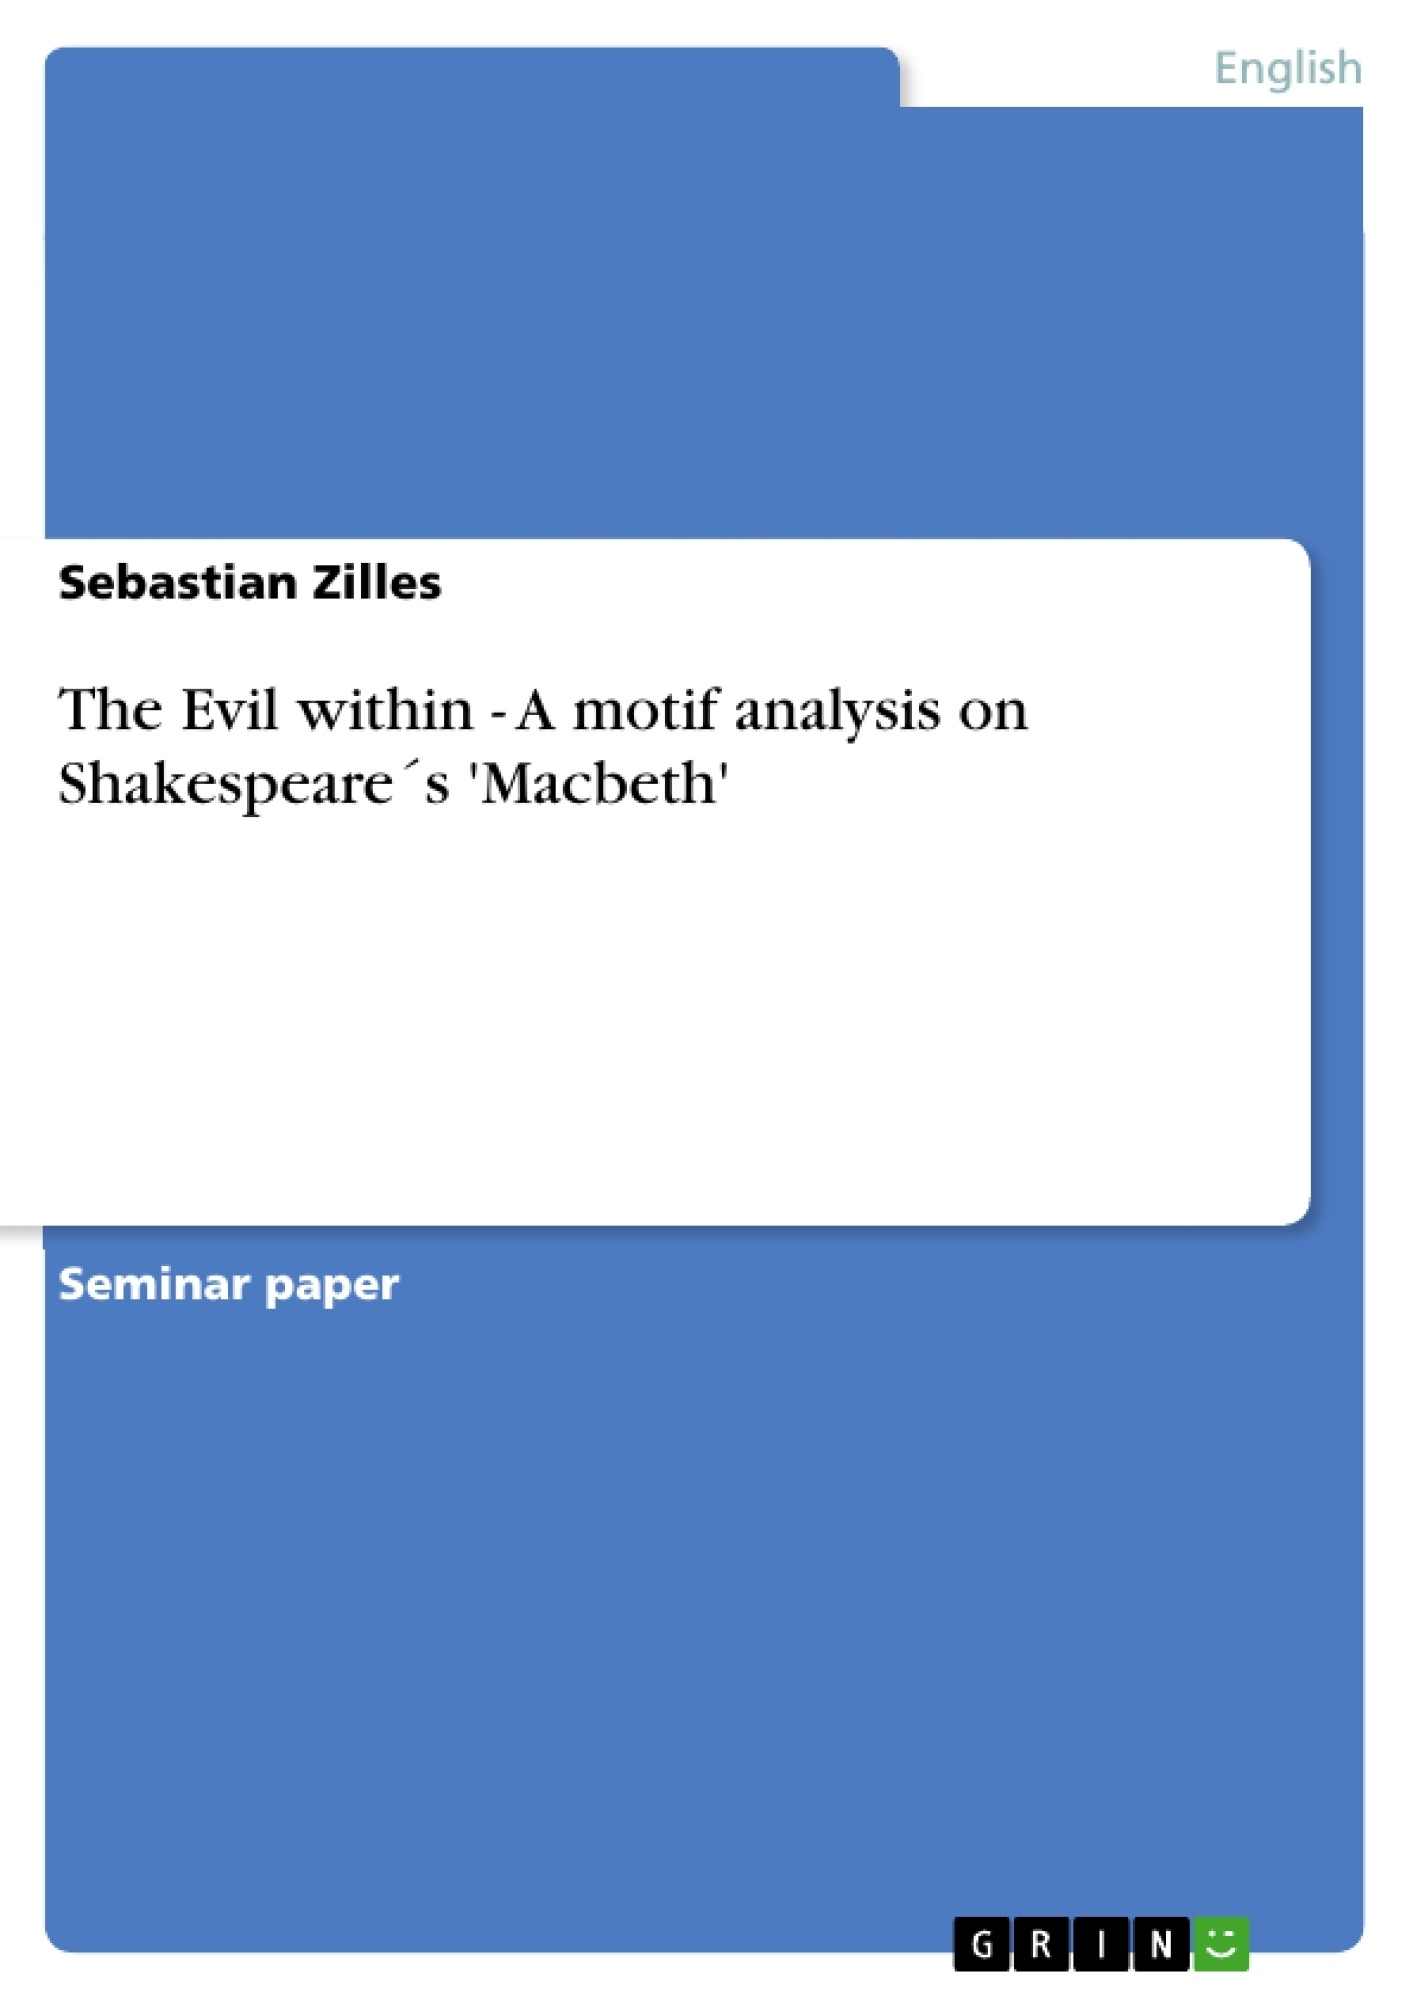 the evil in a motif analysis on shakespeare acirc acute s macbeth upload your own papers earn money and win an iphone 7